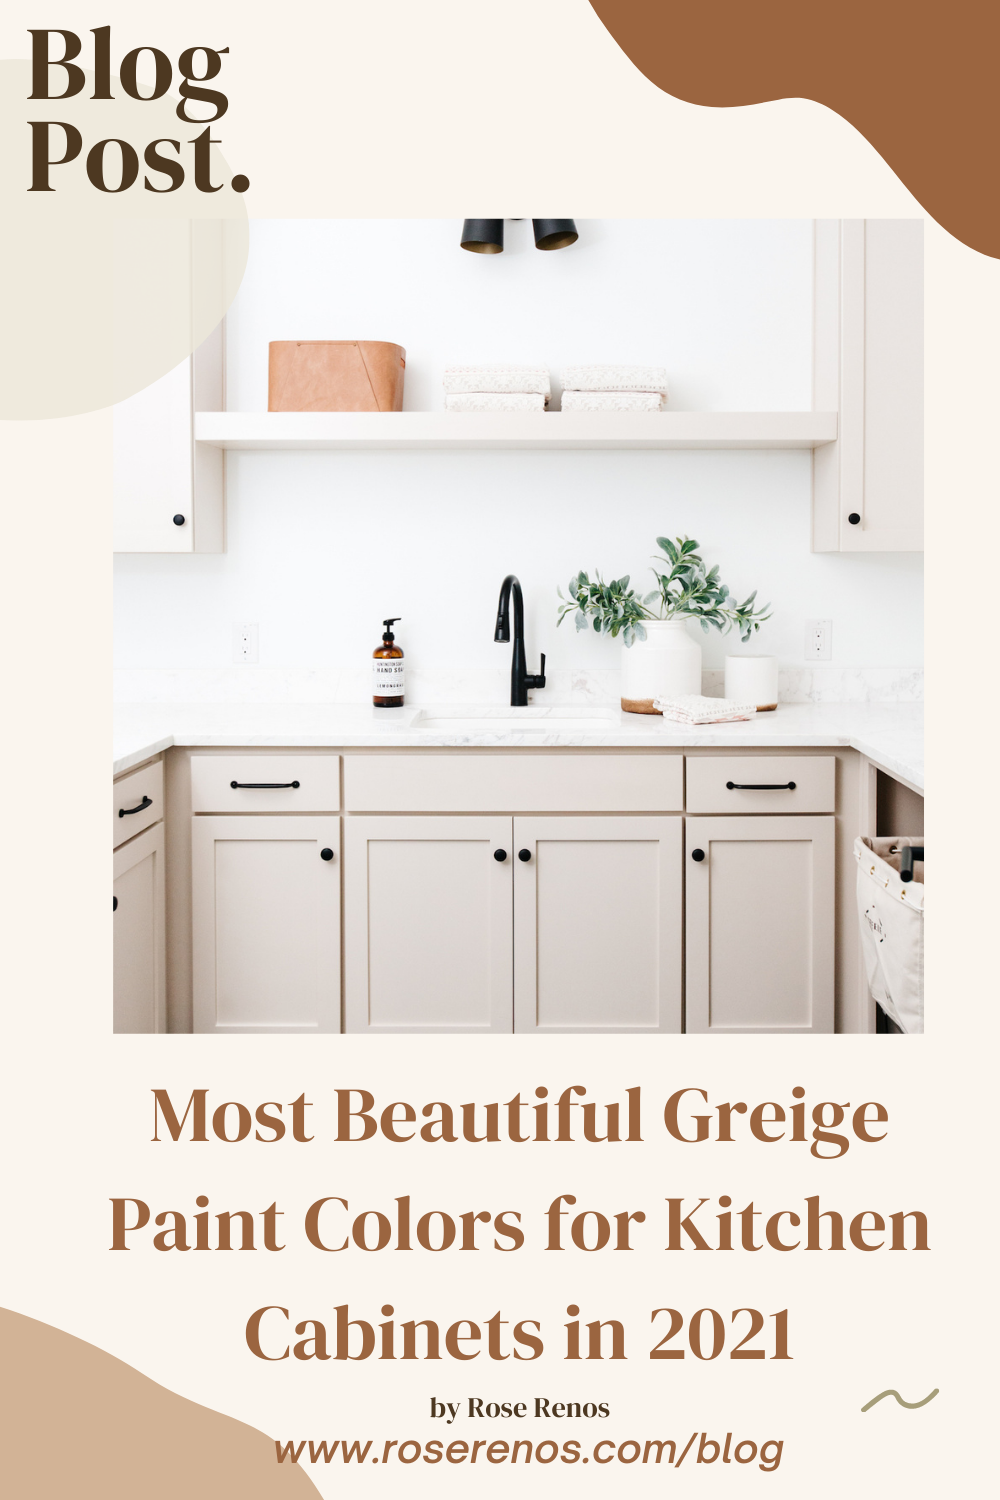 Most Beautiful Greige Paint Colors for Kitchen Cabinets in 2021